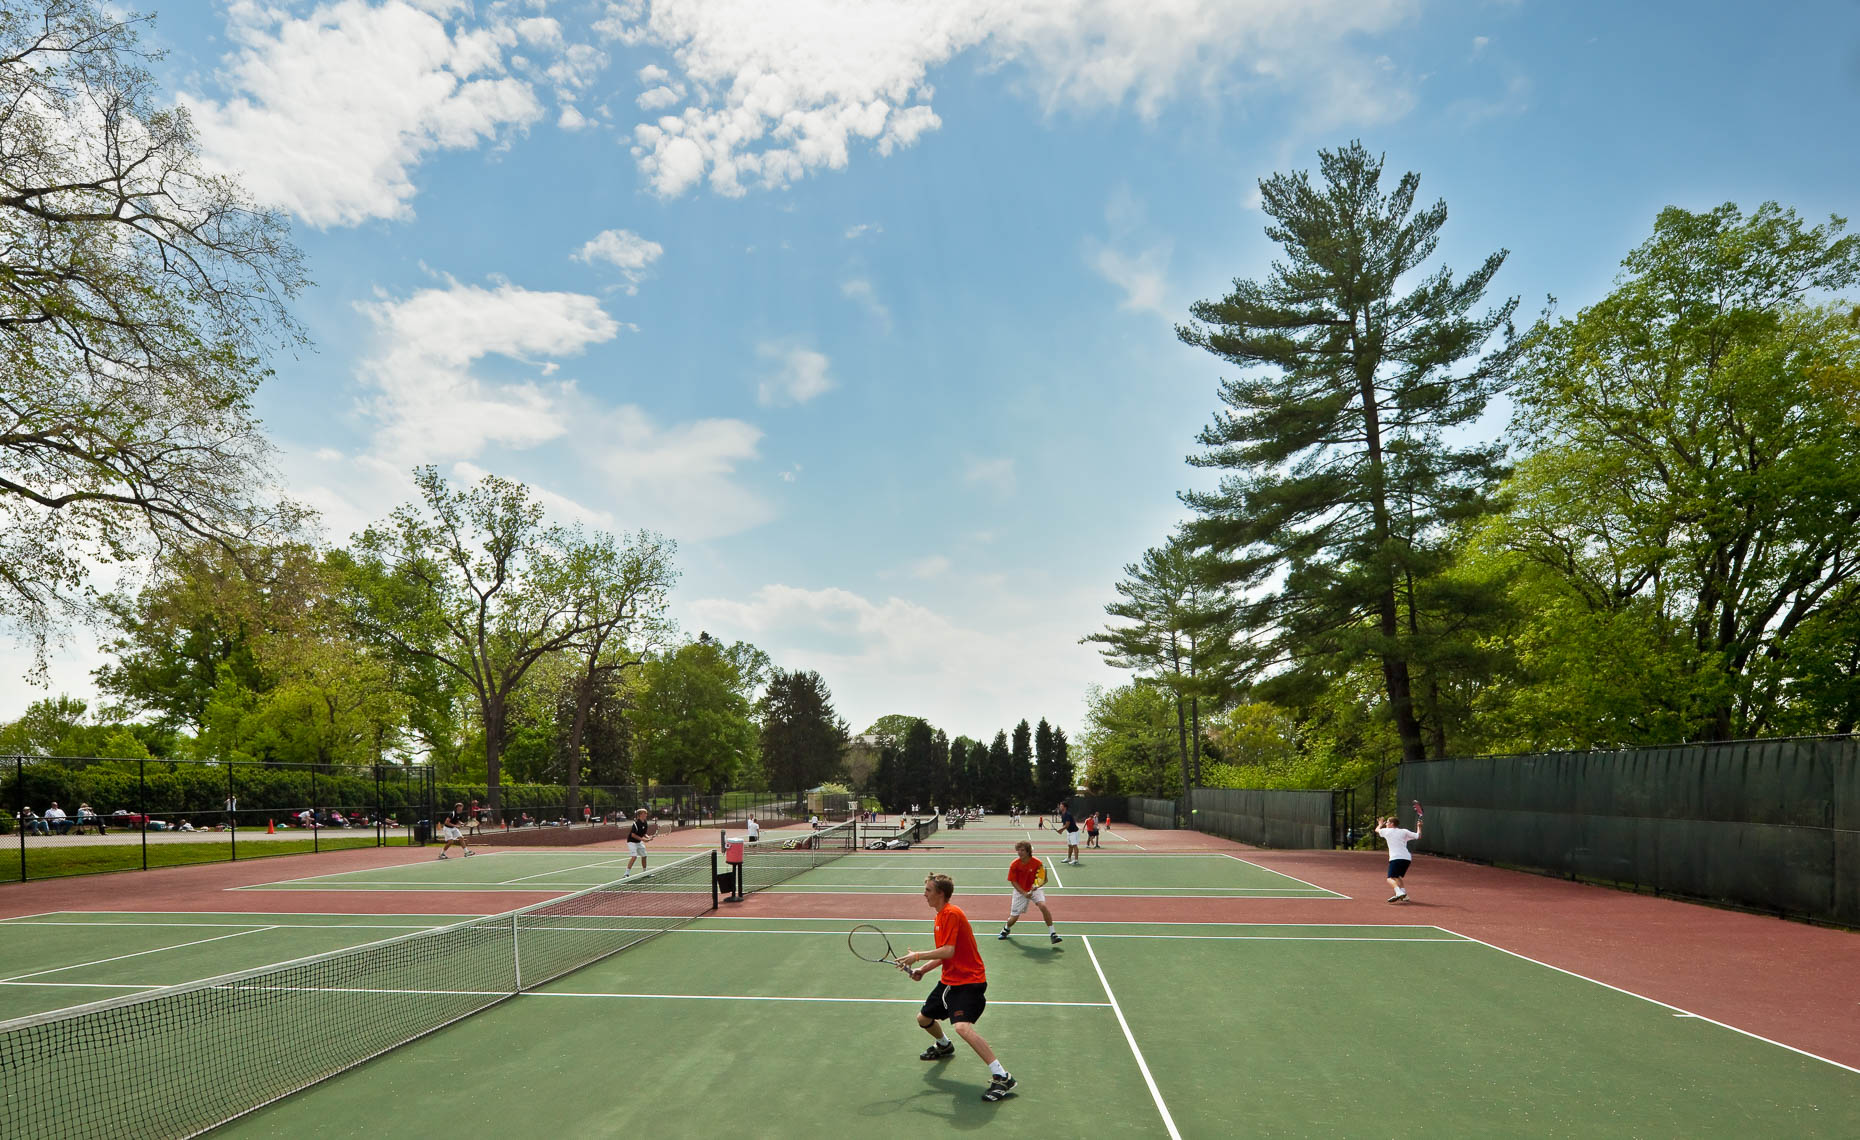 Virginia Hamrick Photography - Tennis Courts - Academia